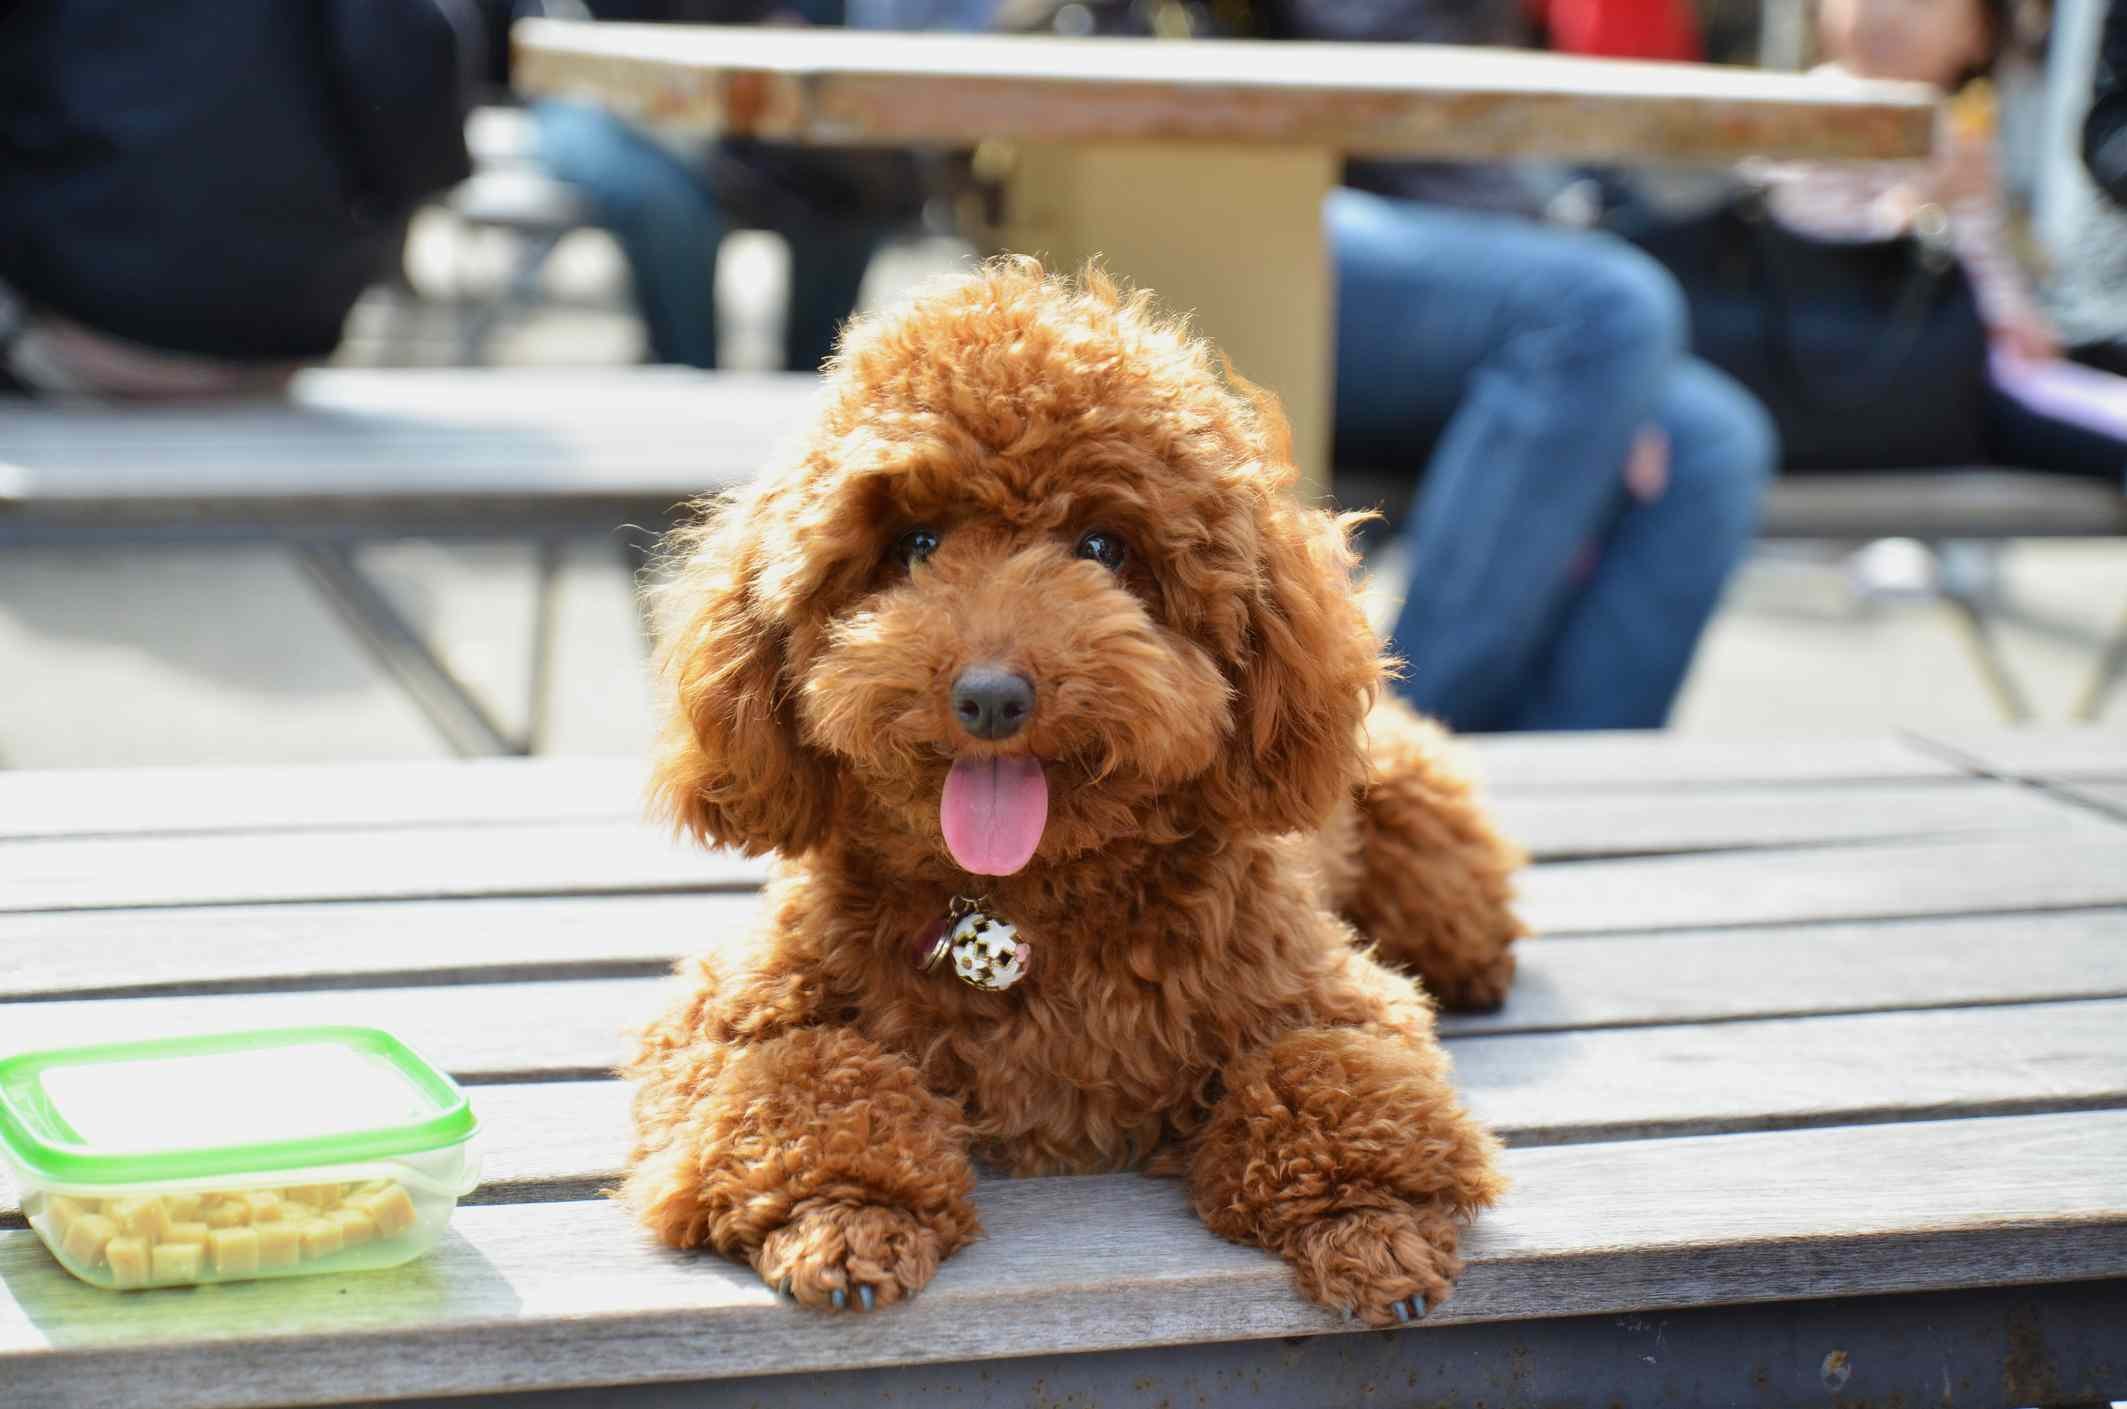 Brown Toy Poodle sitting on park bench next to container of food.